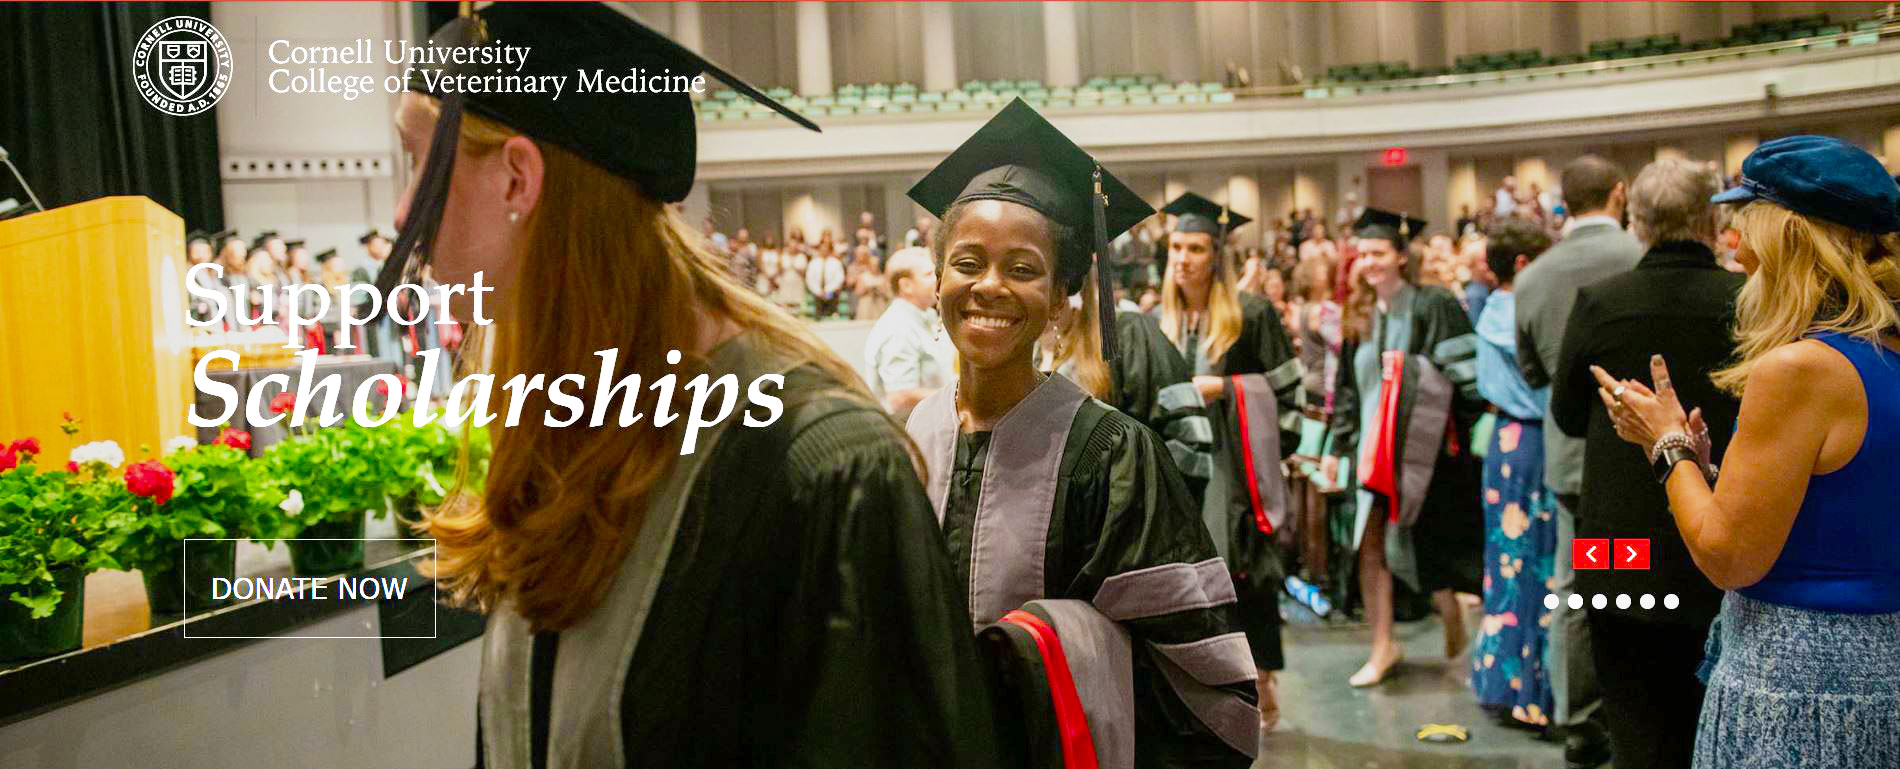 "A screenshot of the CVM Giving page, displaying the words ""Support Scholarships"" over a photo of a student smiling during the 2018 hooding ceremony"